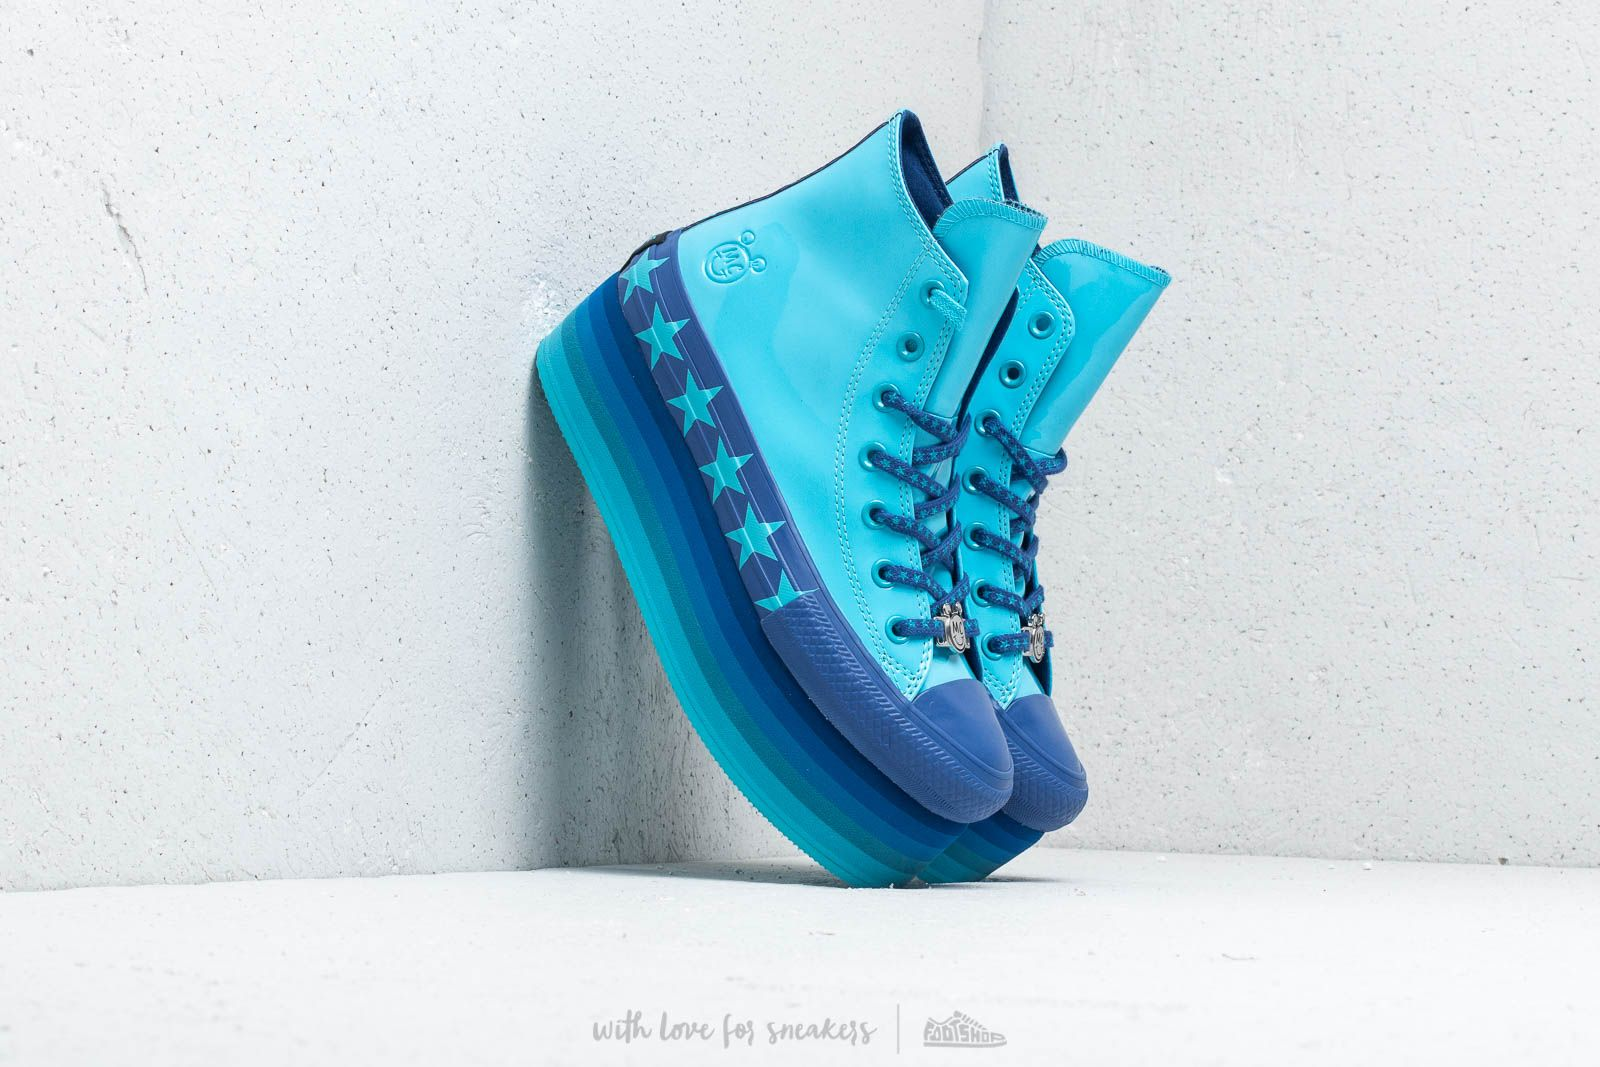 ab7e52c2aac Converse x Miley Cyrus Chuck Taylor All Star Platform Hi Gnarly Blue  Blue   Gnarly